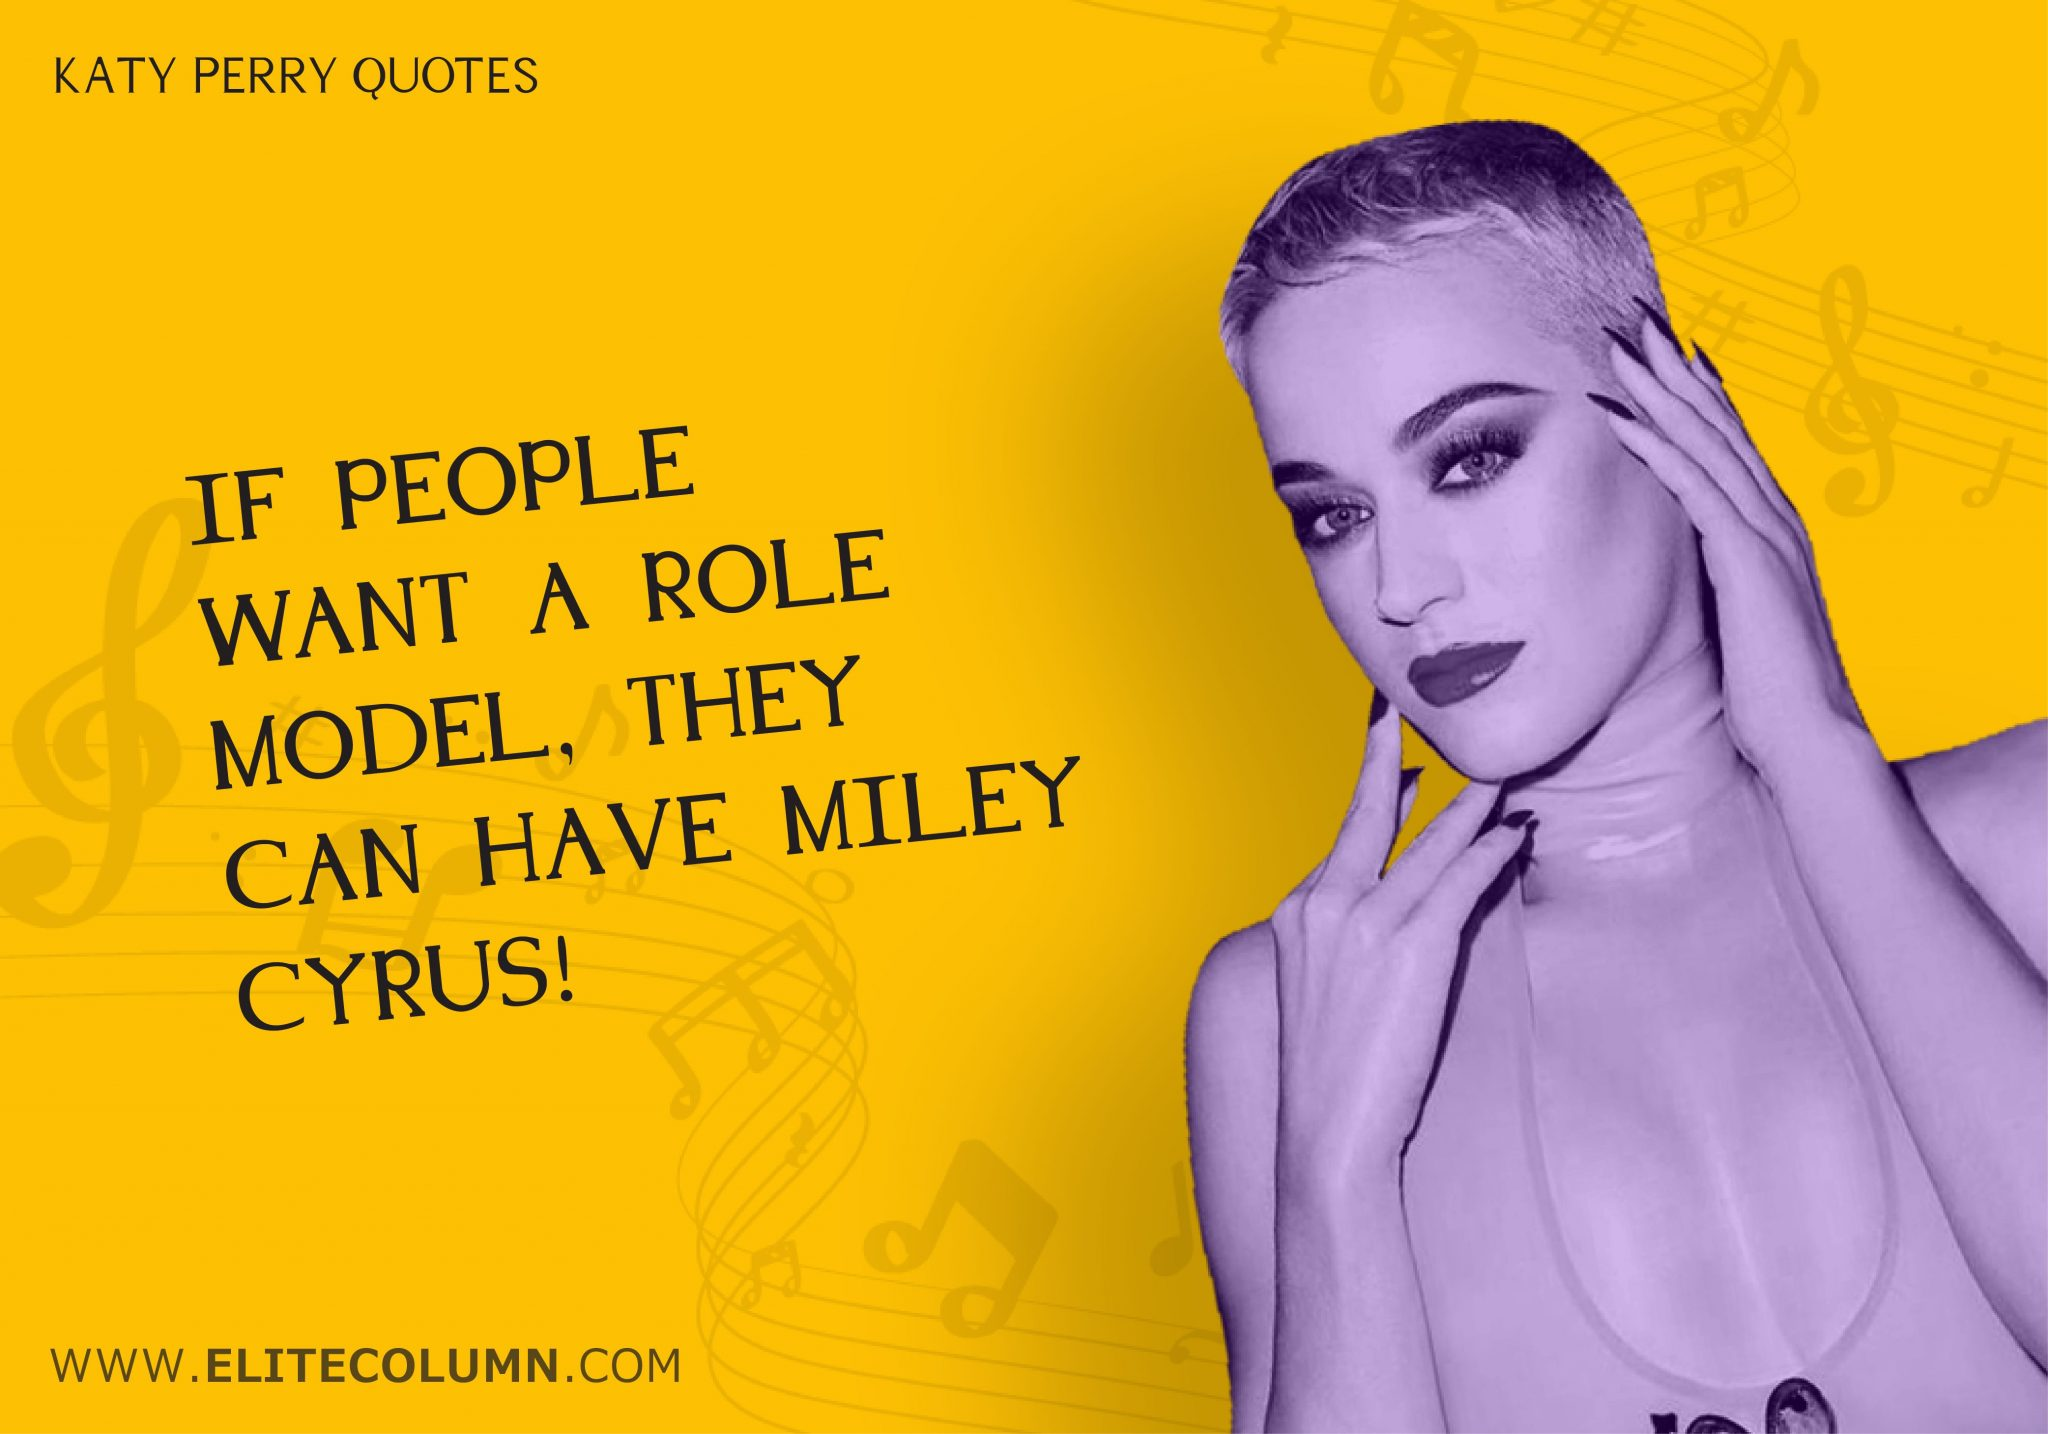 Katy Perry Quotes (6)